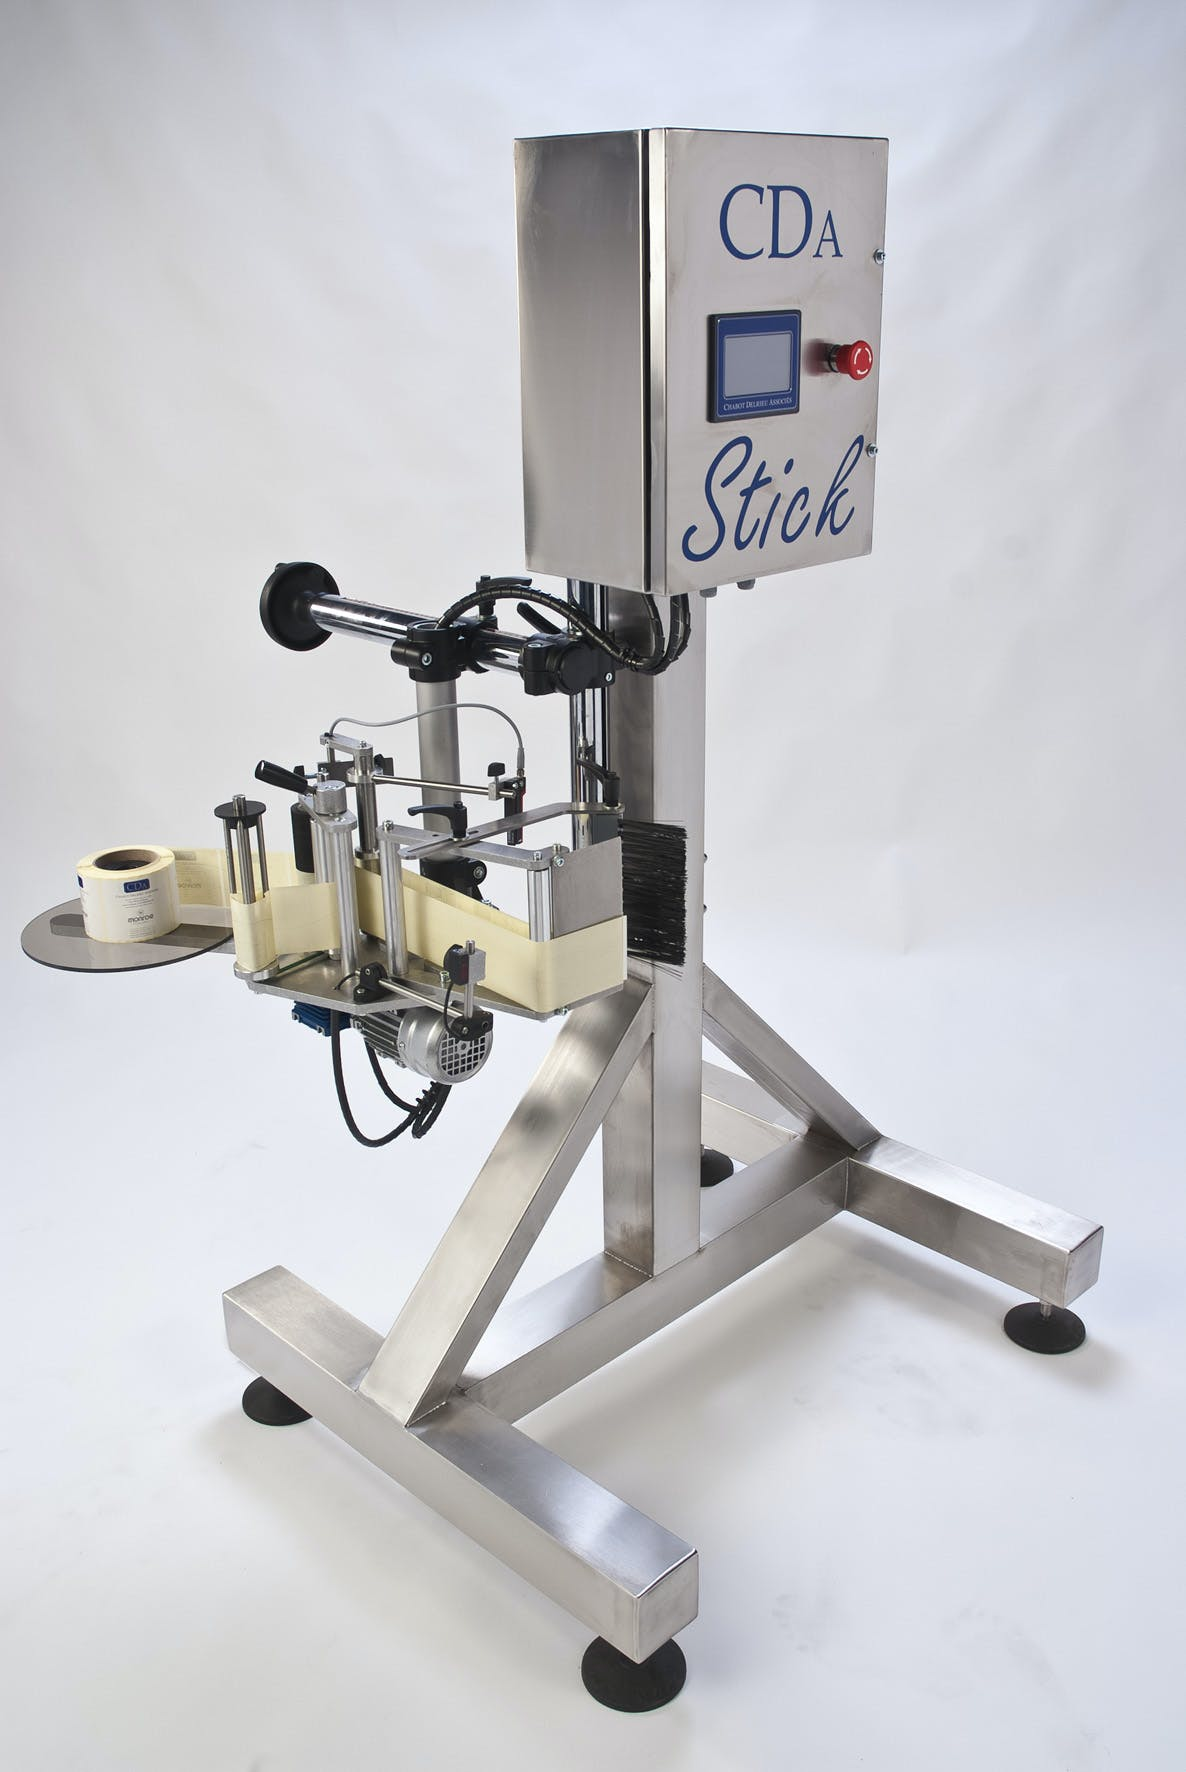 Stick Bottling machinery sold by CDA USA Inc,